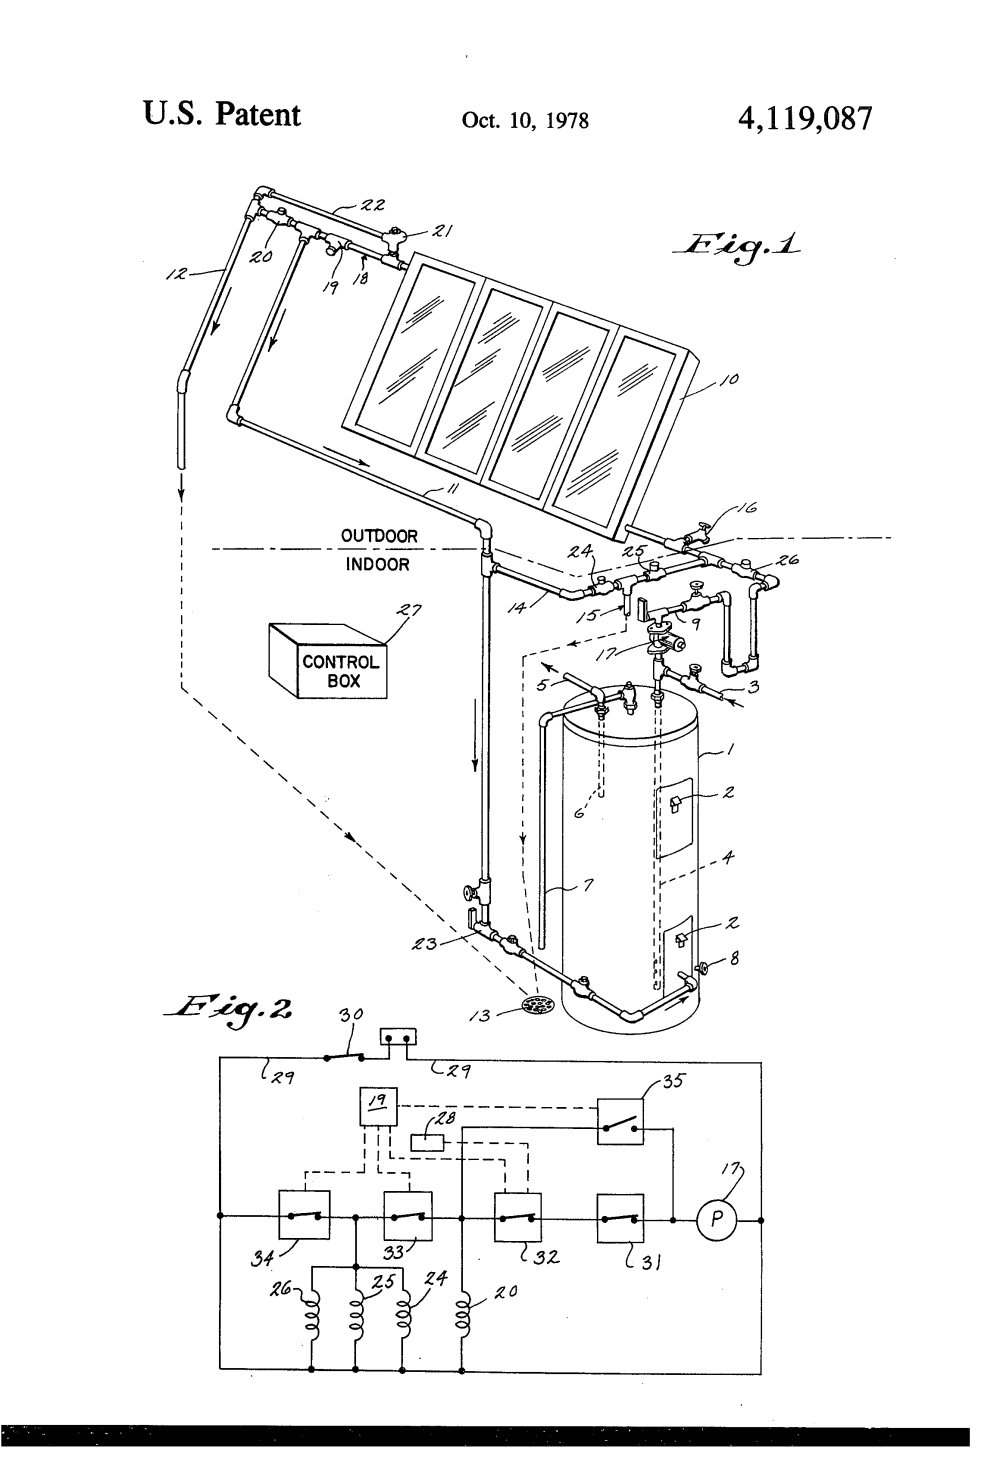 medium resolution of patent us4119087 solar water heating system google patents system google patents on wiring solar panels in series and parallel